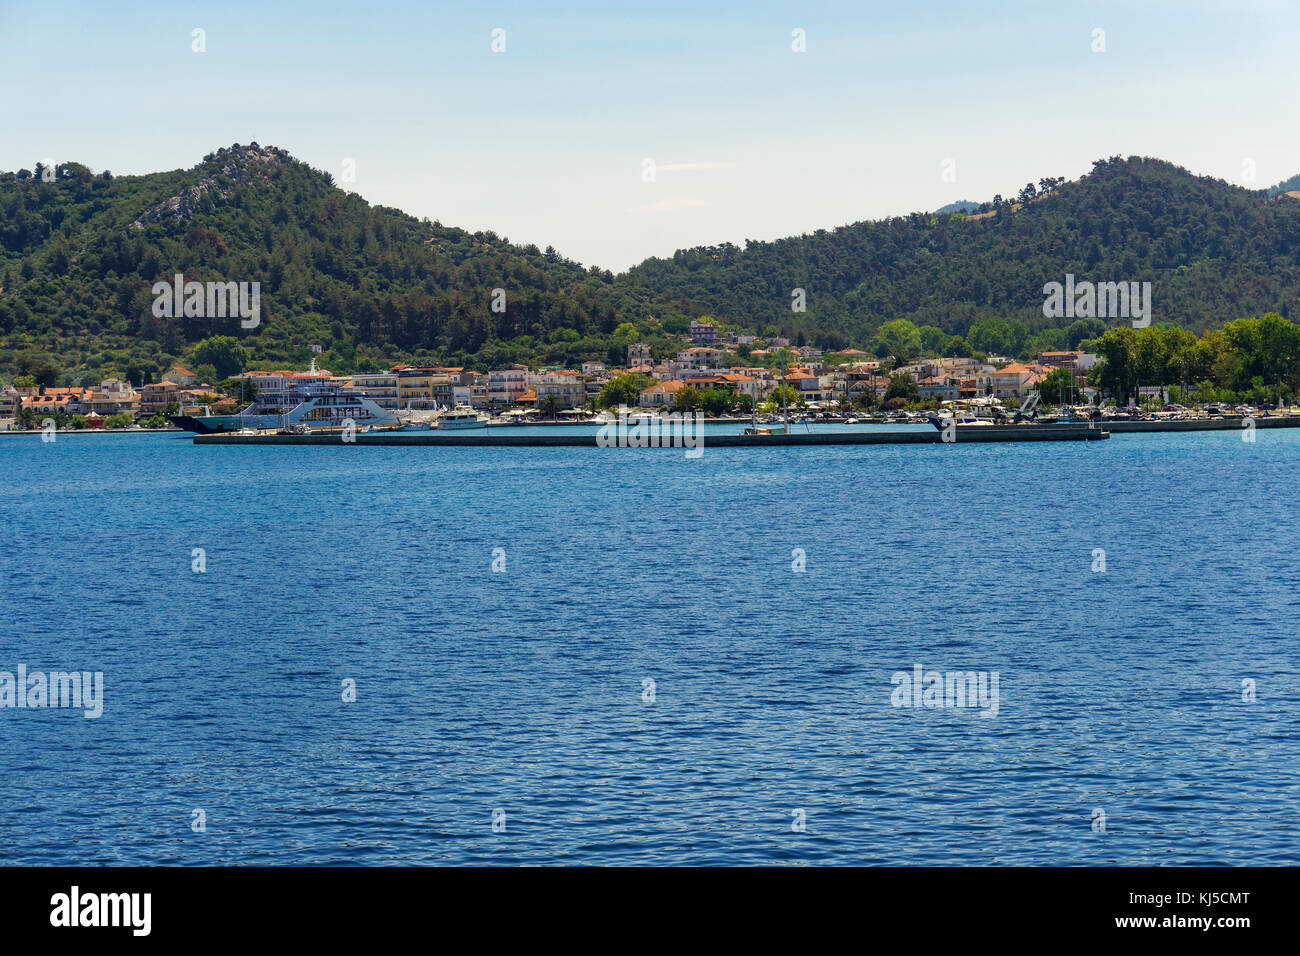 Thasos Island, Greece. Limenas town panorama day view. Landscape of capital town Limenas with moored car ferries Stock Photo